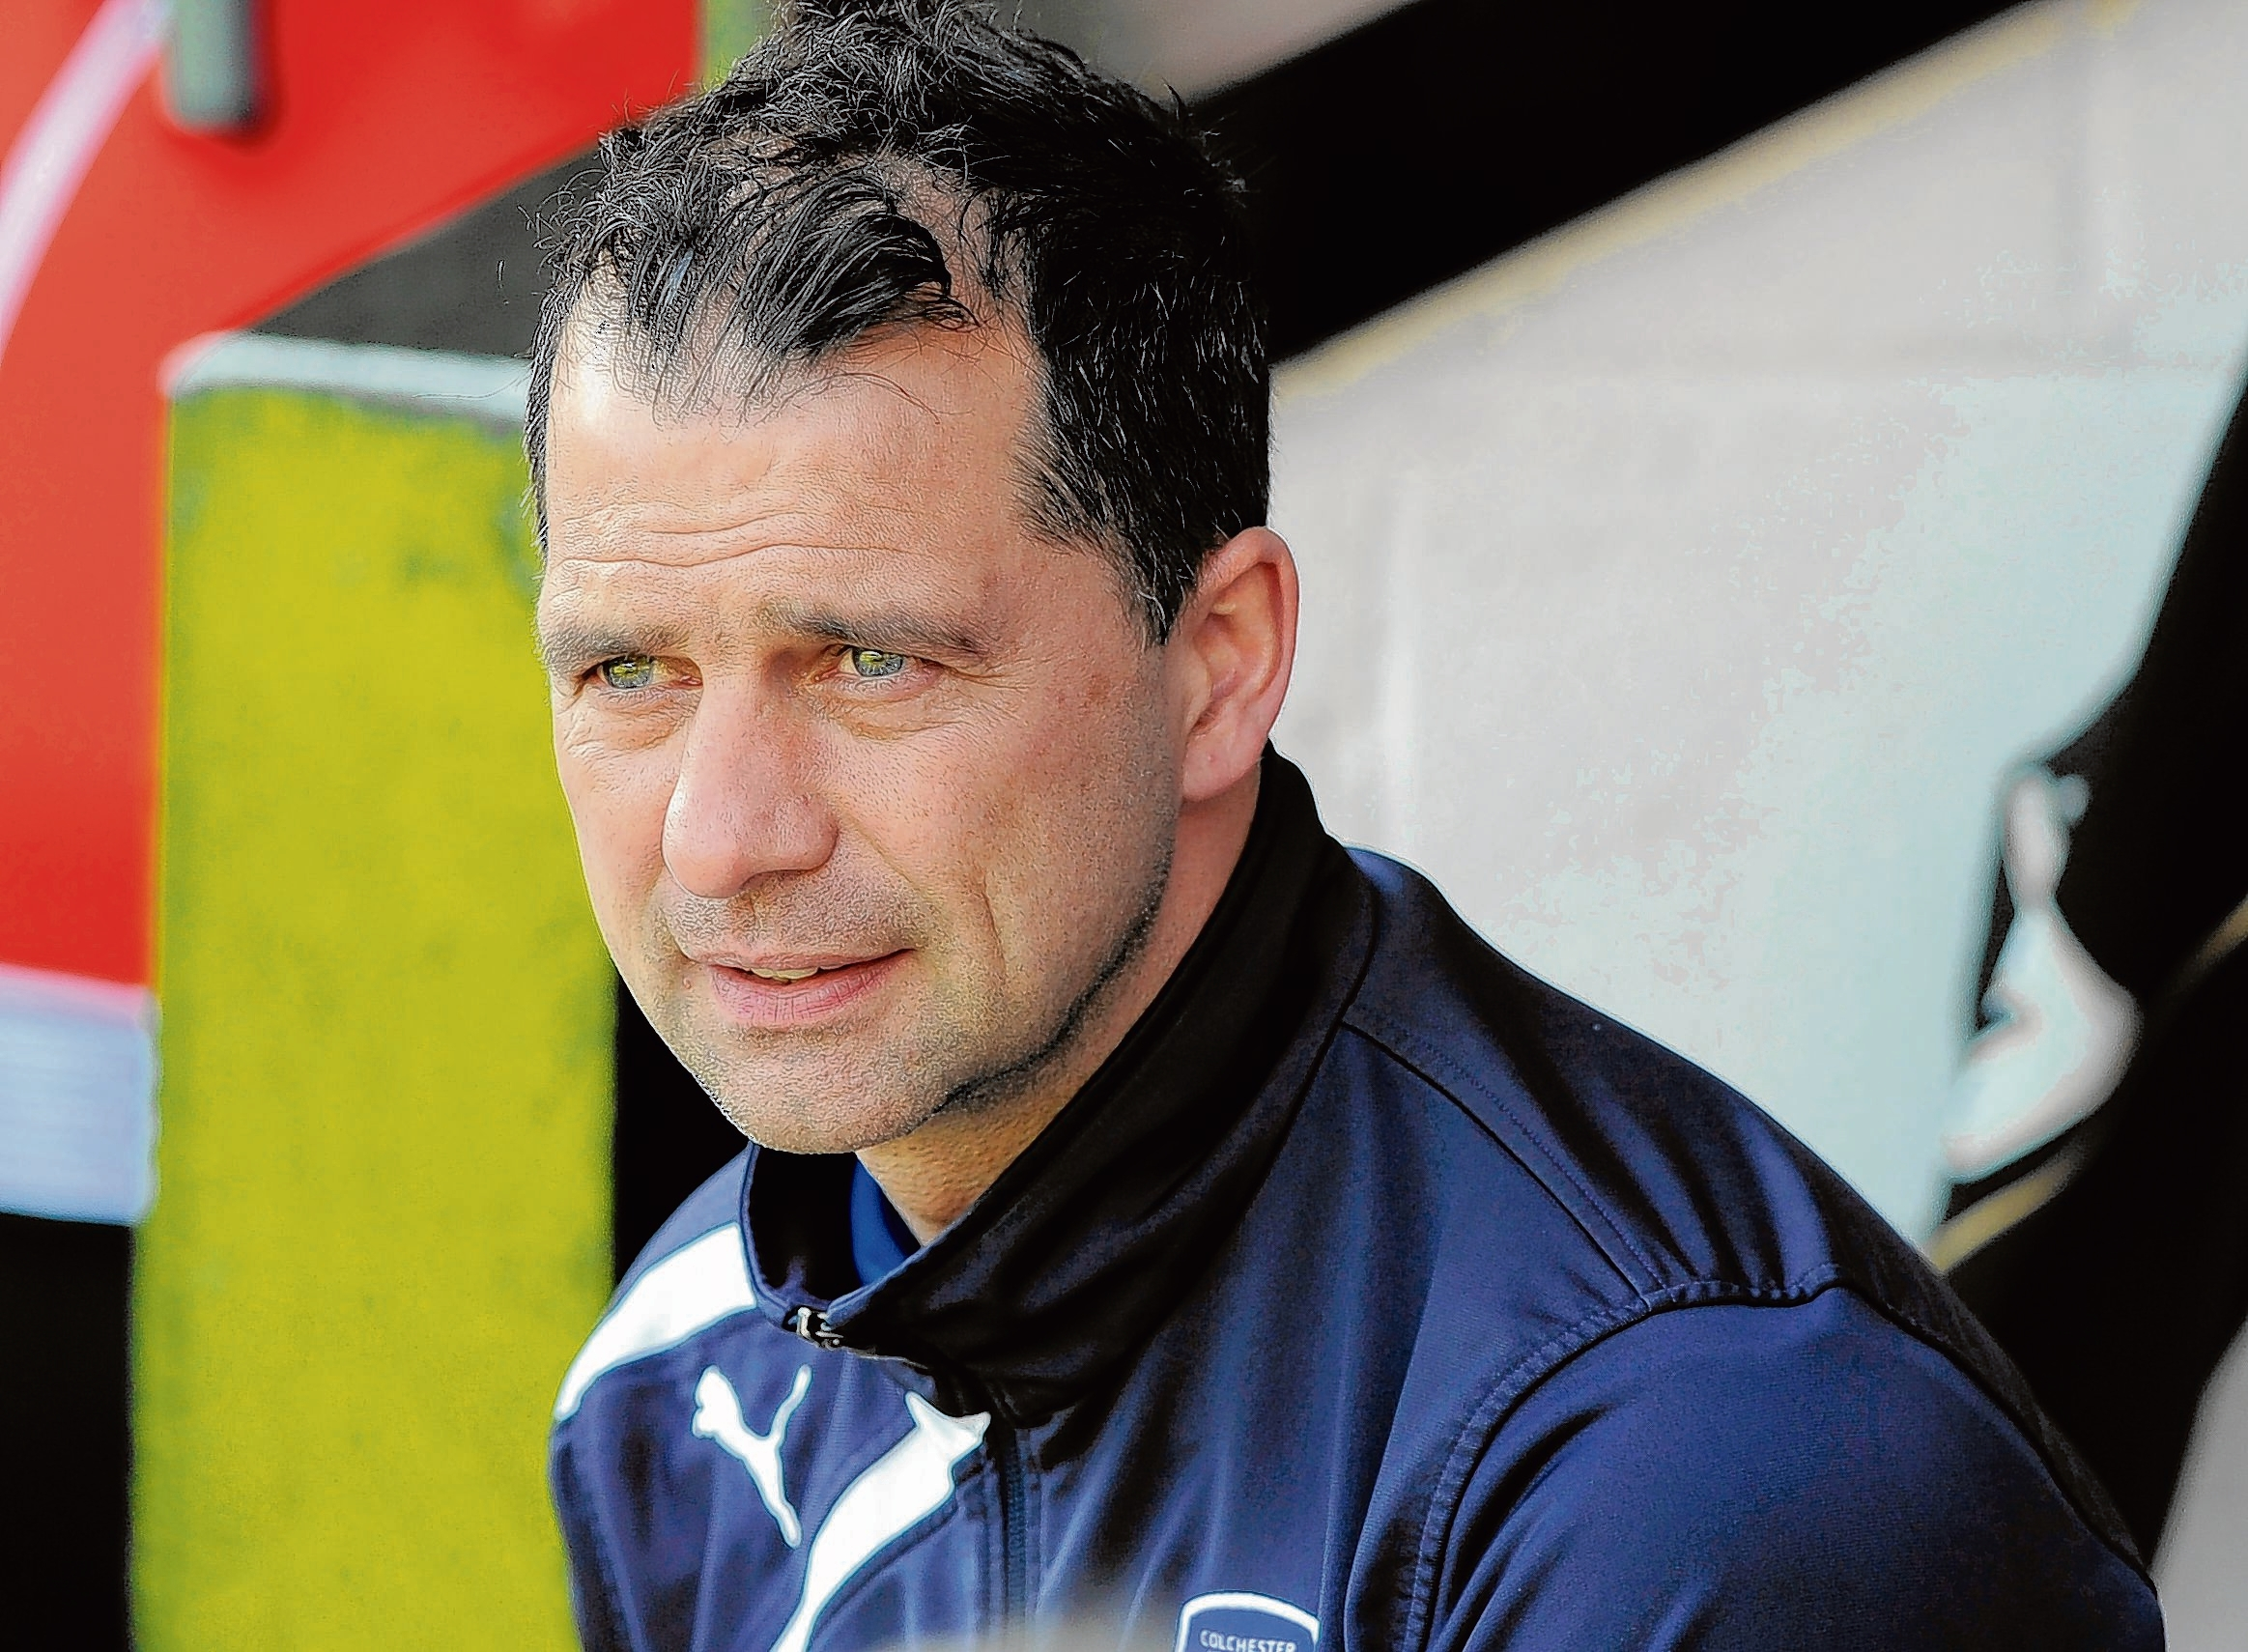 On the hunt - Colchester United manager Joe Dunne is looking for a new goalkeeper to replace Mark Cousins, who has left to join Dagenham and Redbridge.